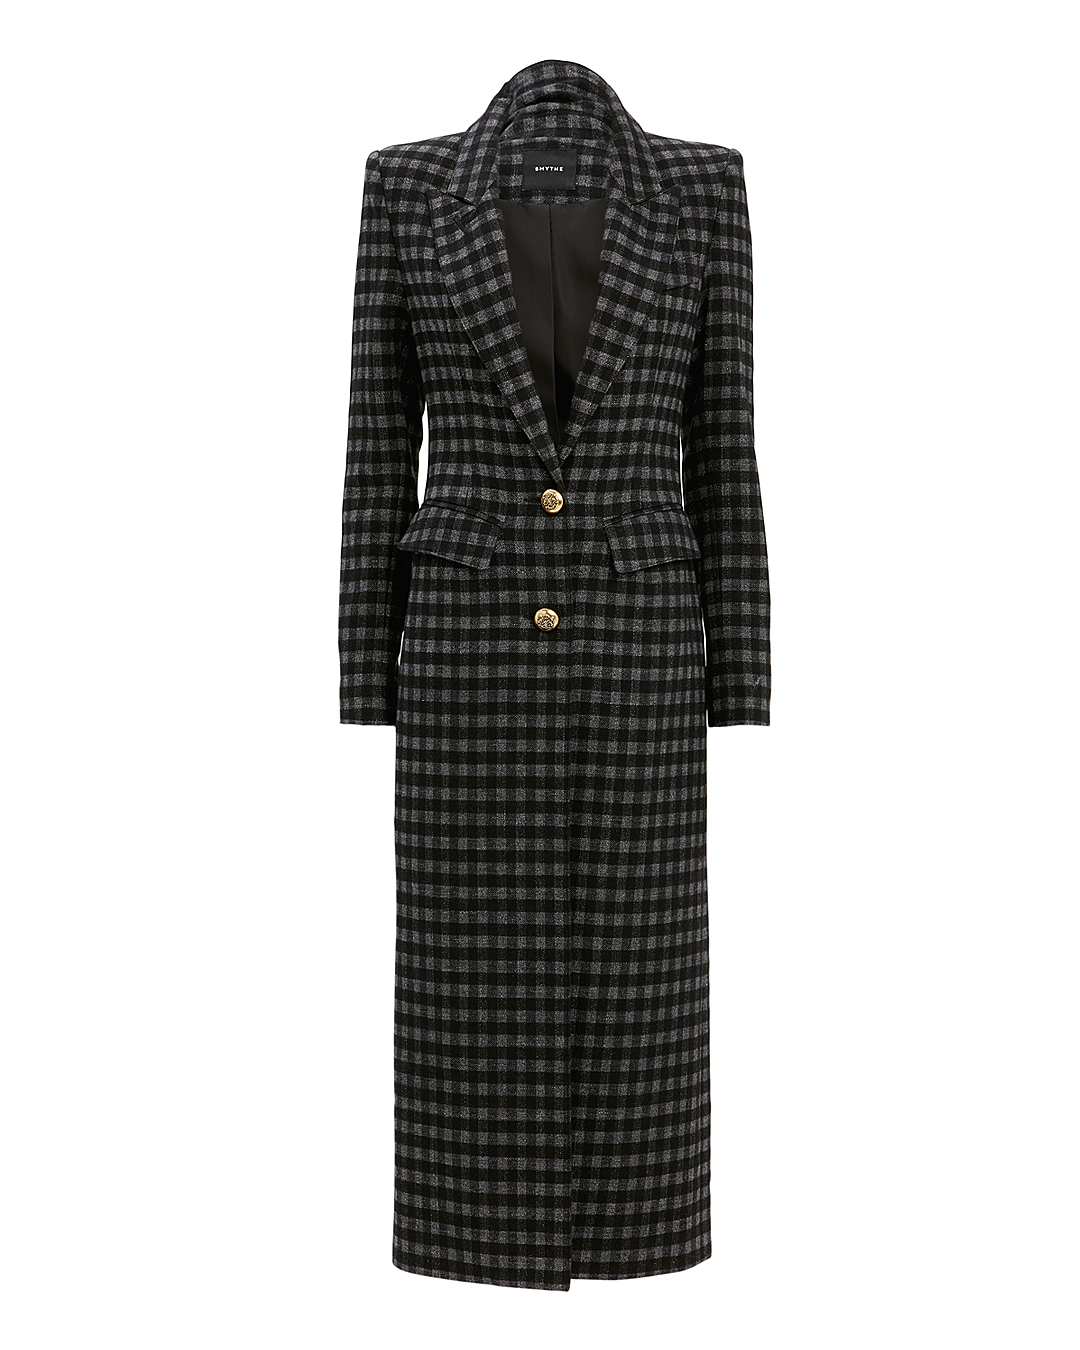 SMYTHE BRANDO PLAID COAT MULTI